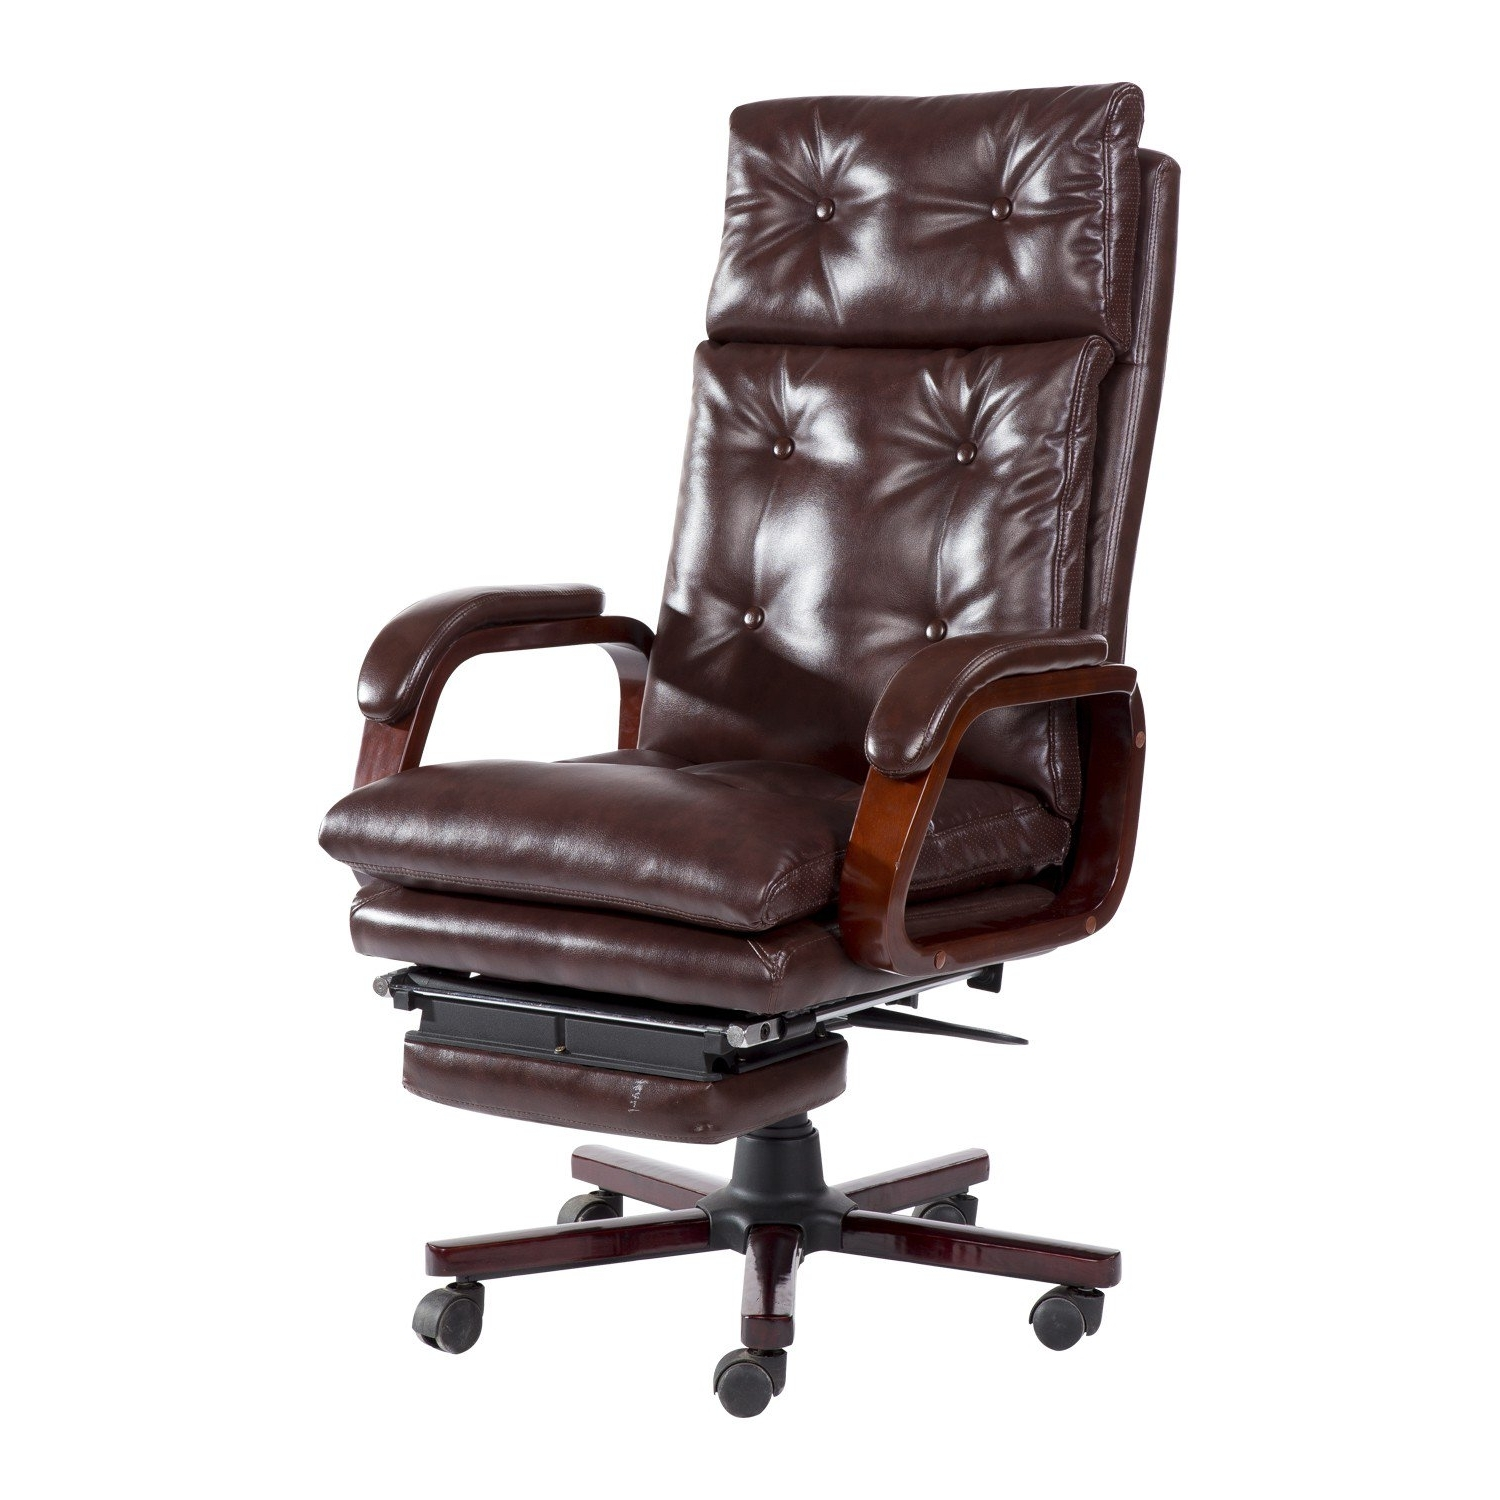 Most Recent Homcom High Back Pu Leather Executive Reclining Office Chair With Throughout Leather Executive Office Chairs (View 12 of 20)